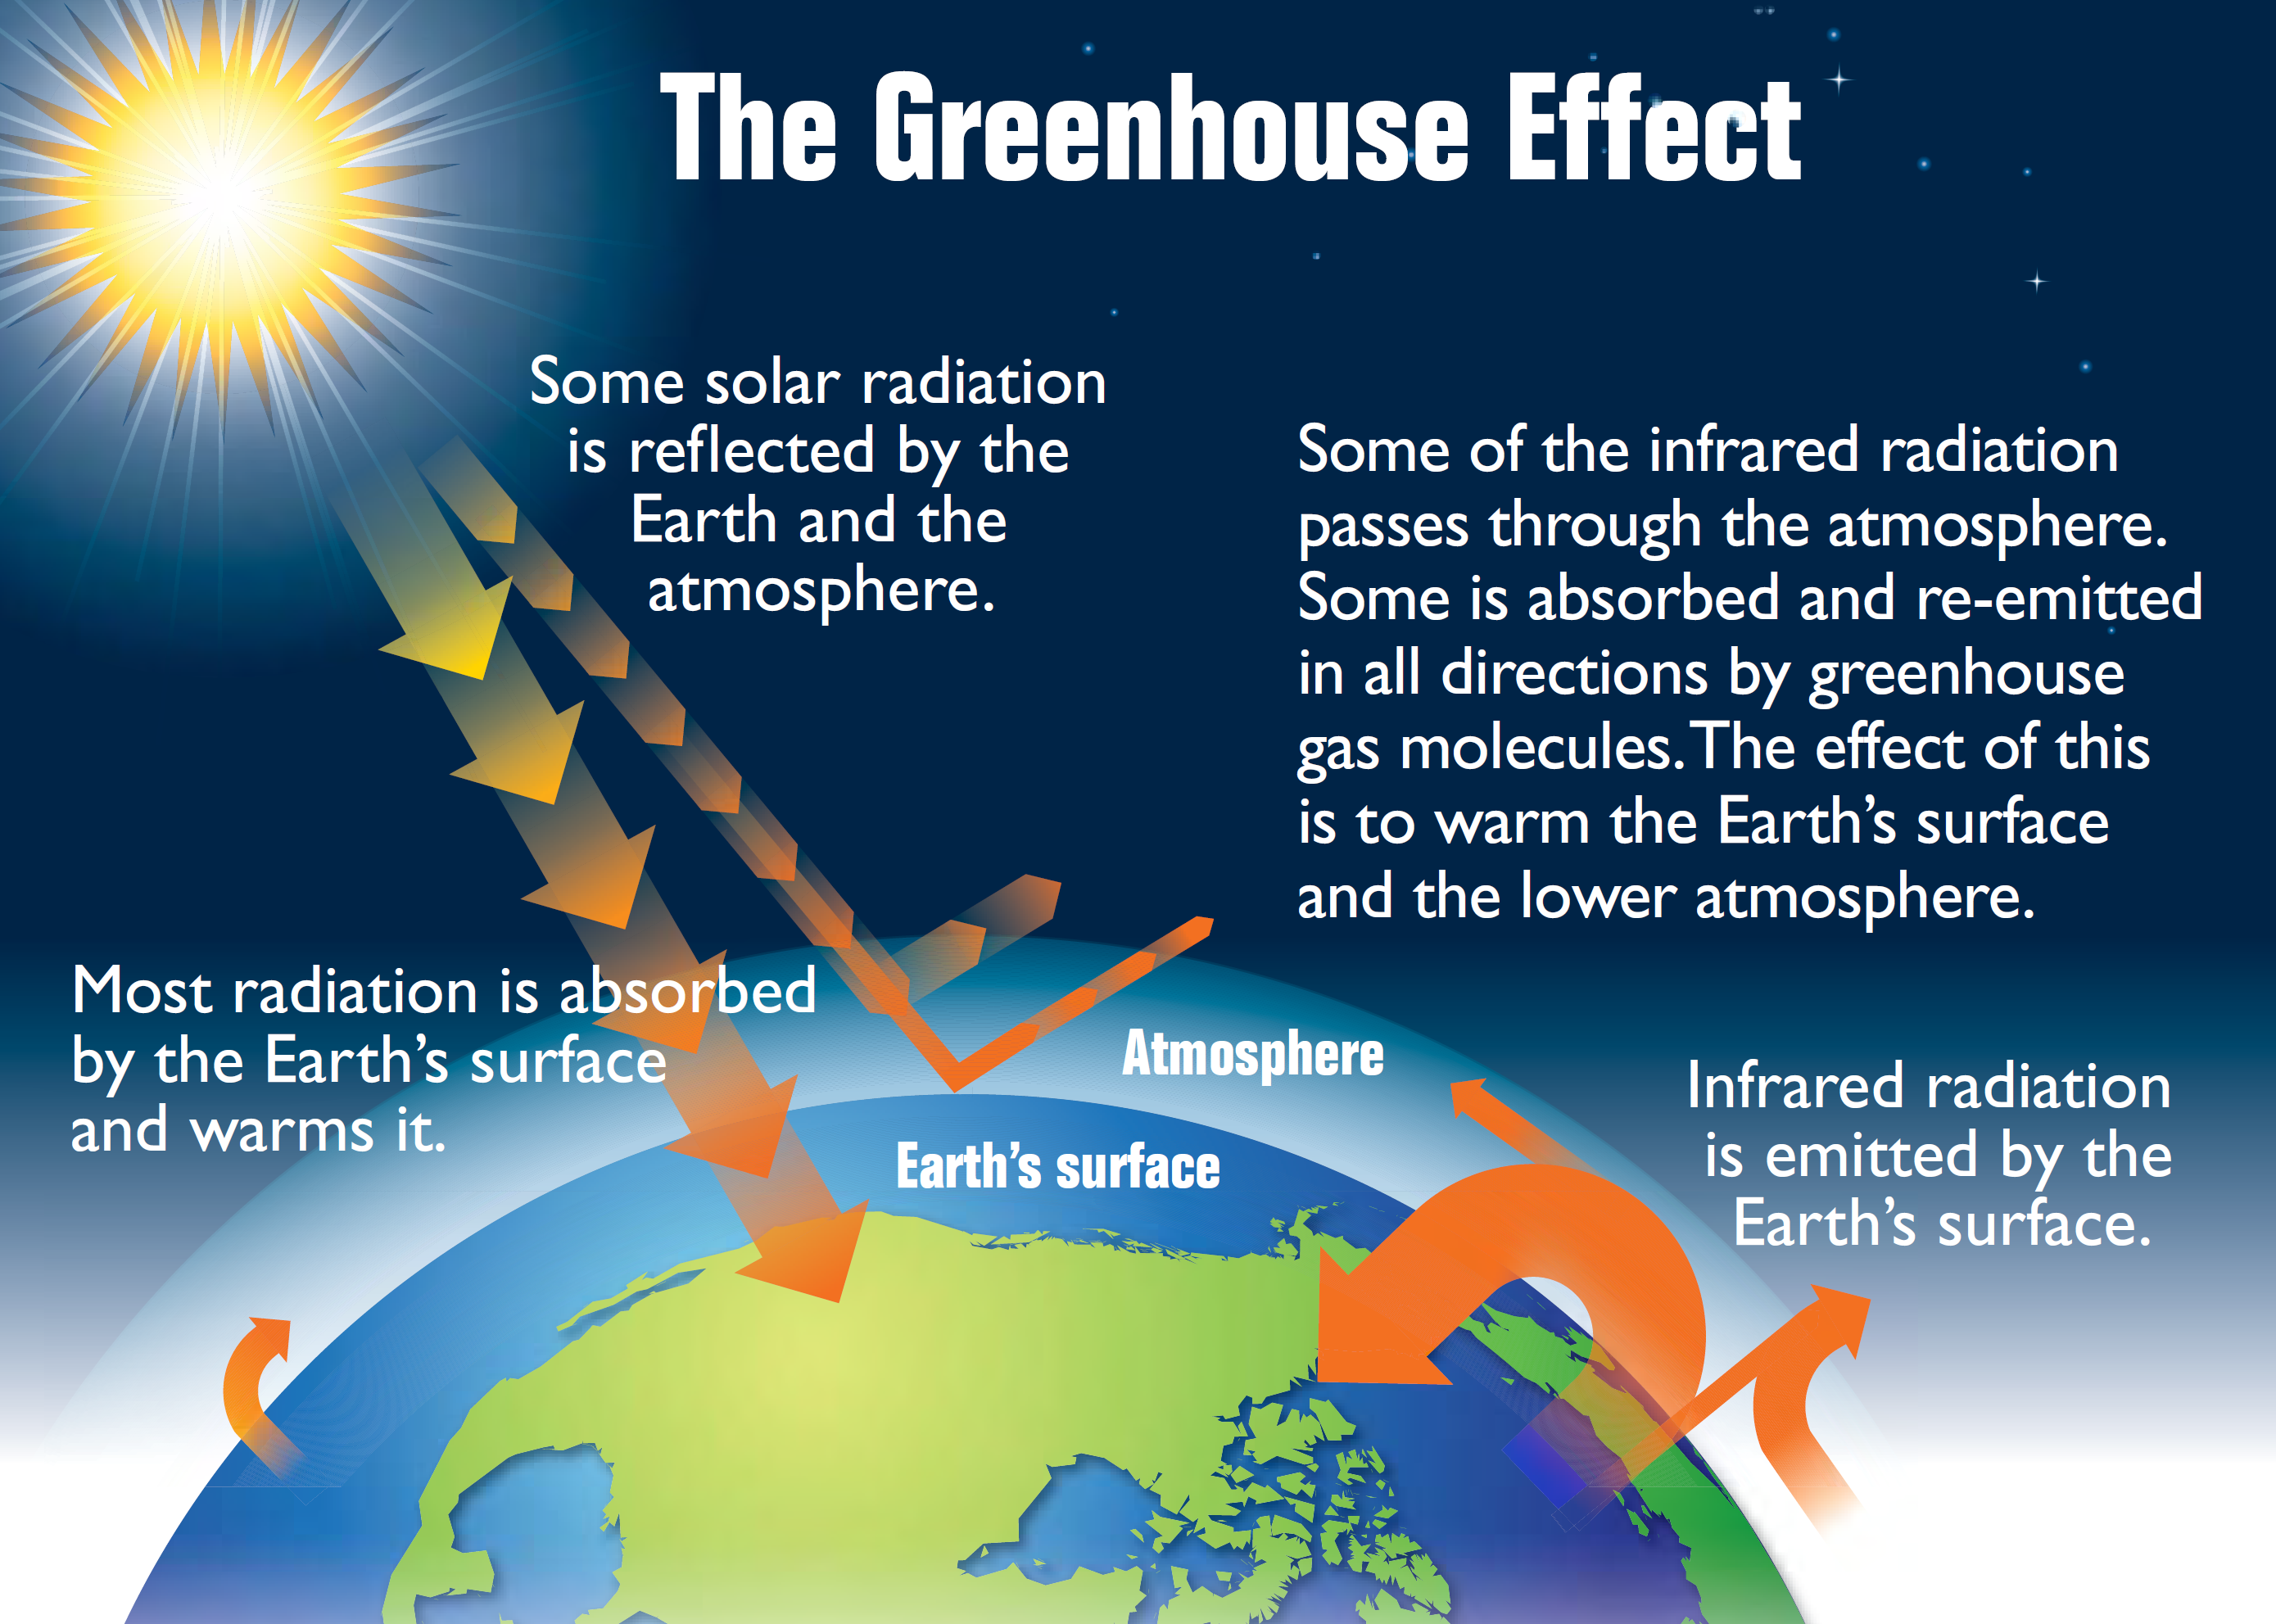 https://upload.wikimedia.org/wikipedia/commons/8/8e/Earth's_greenhouse_effect_(US_EPA,_2012).png